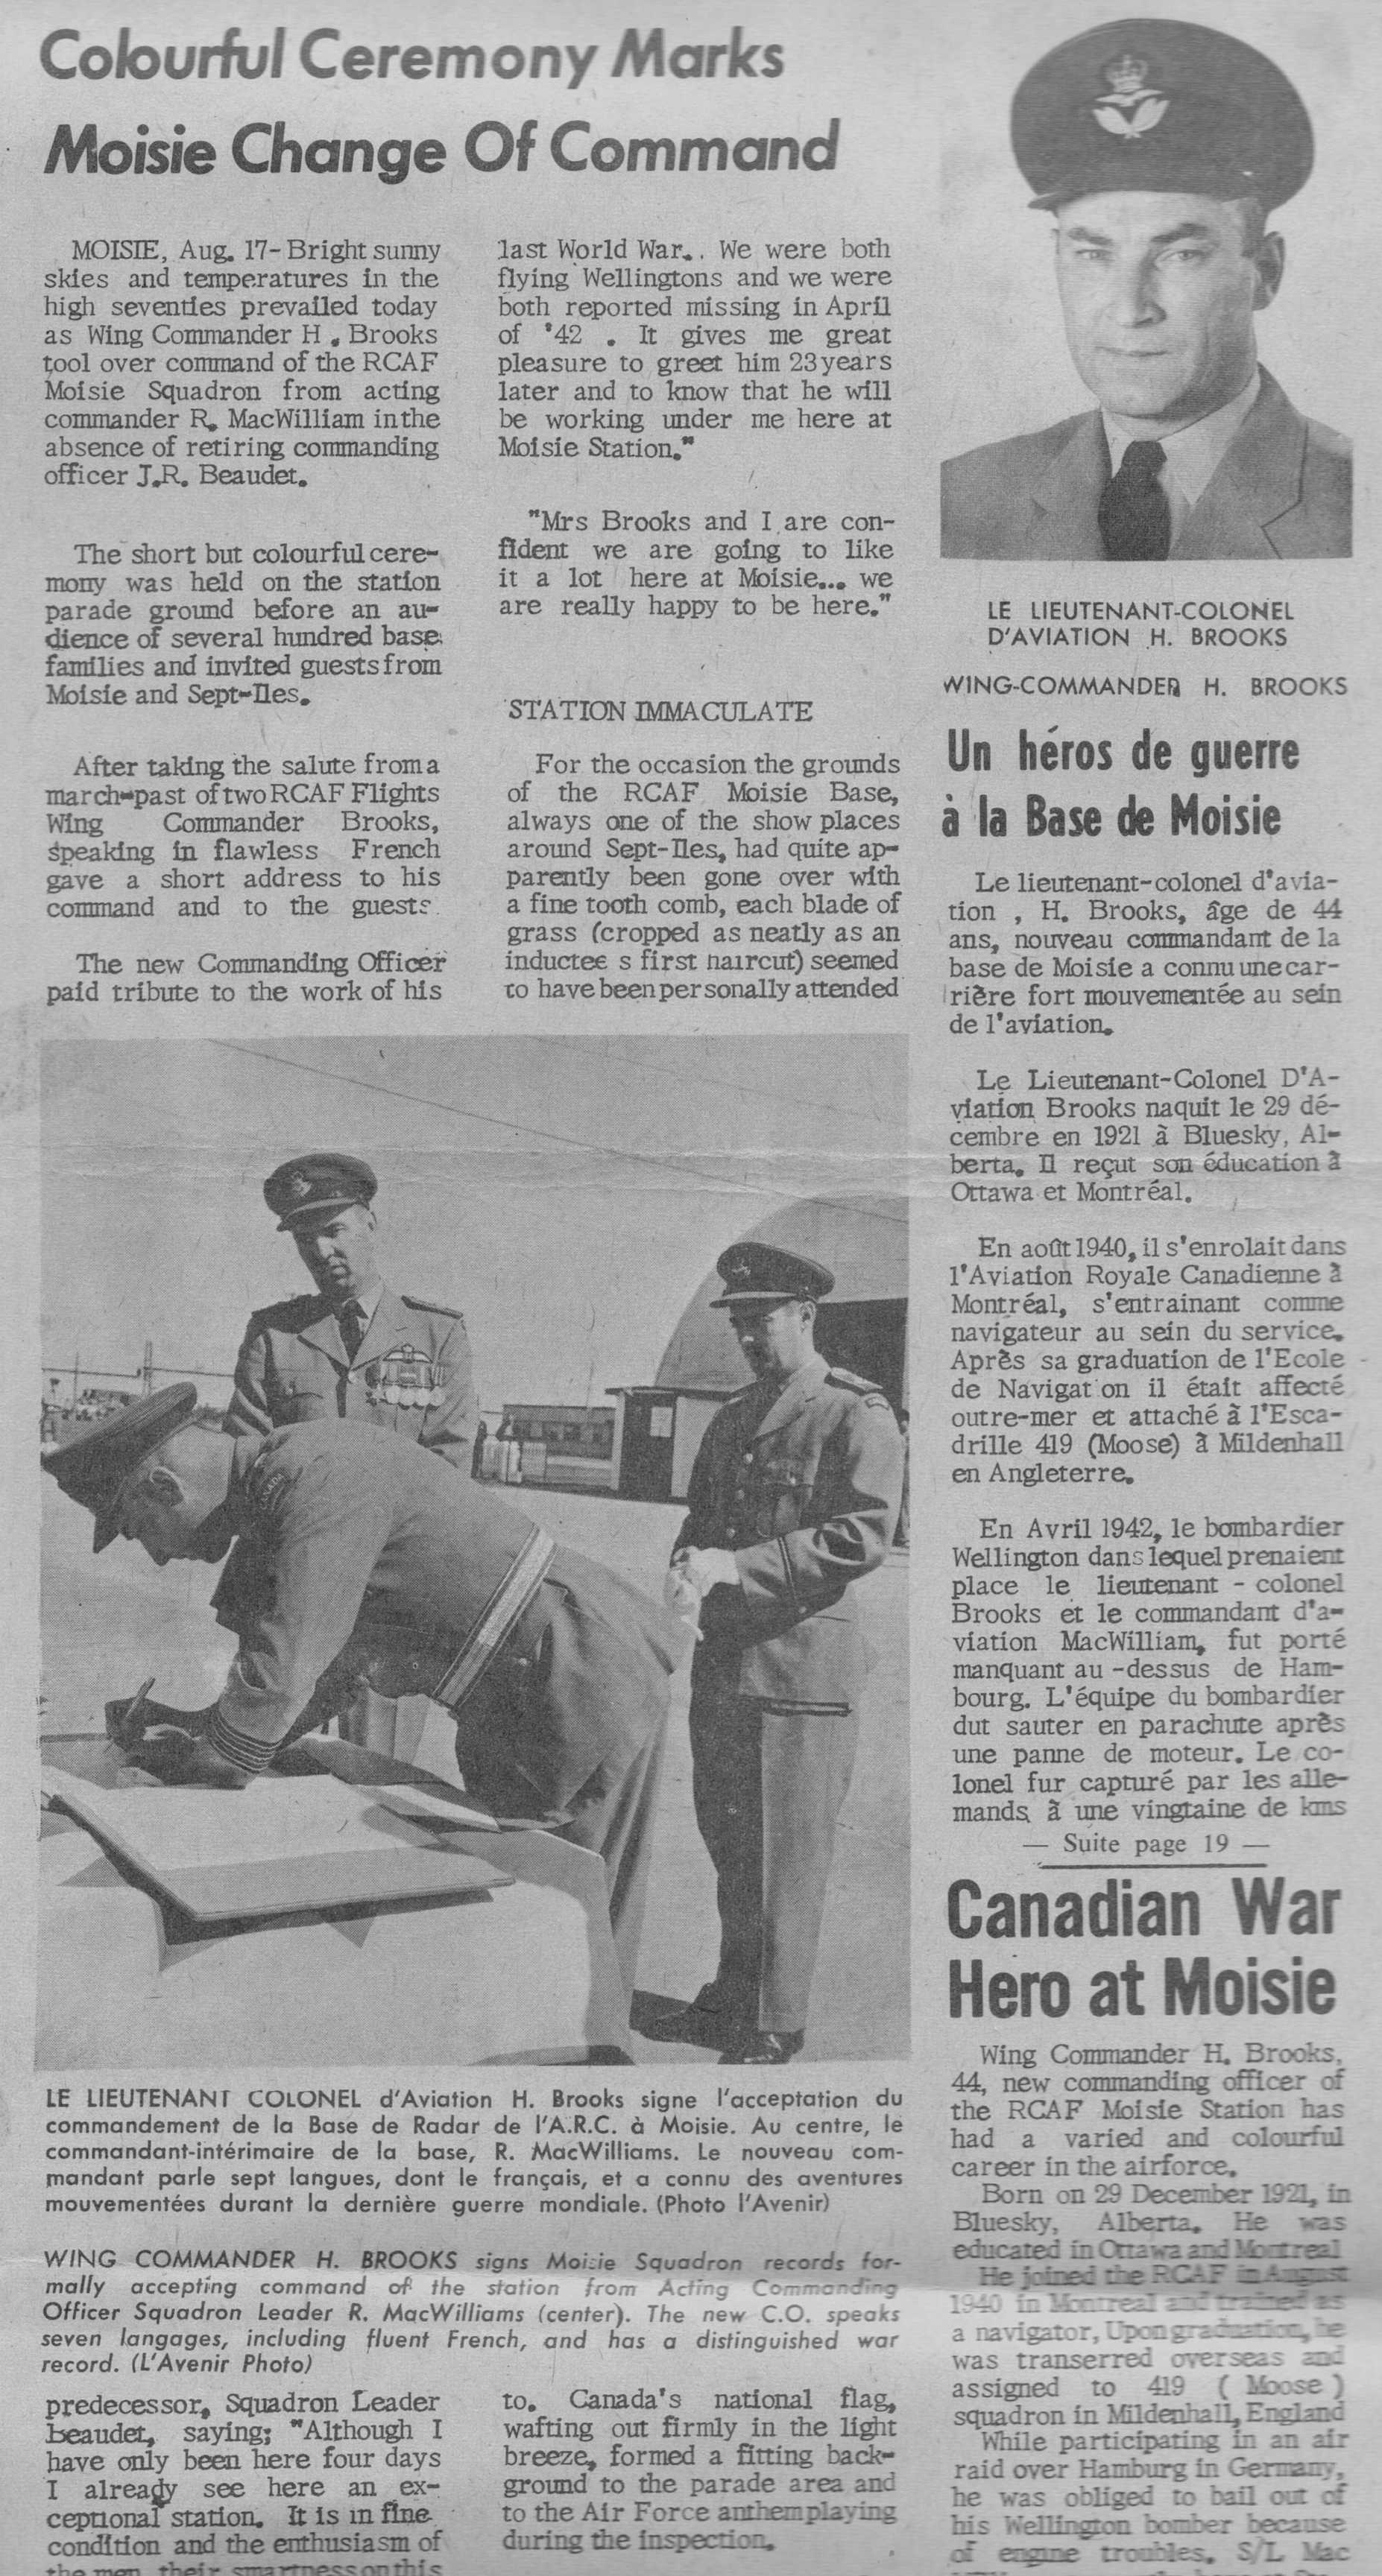 Sept Iles newspaper L'Avenir coverage of Hubert Brooks assuming command of RCAF Moisie